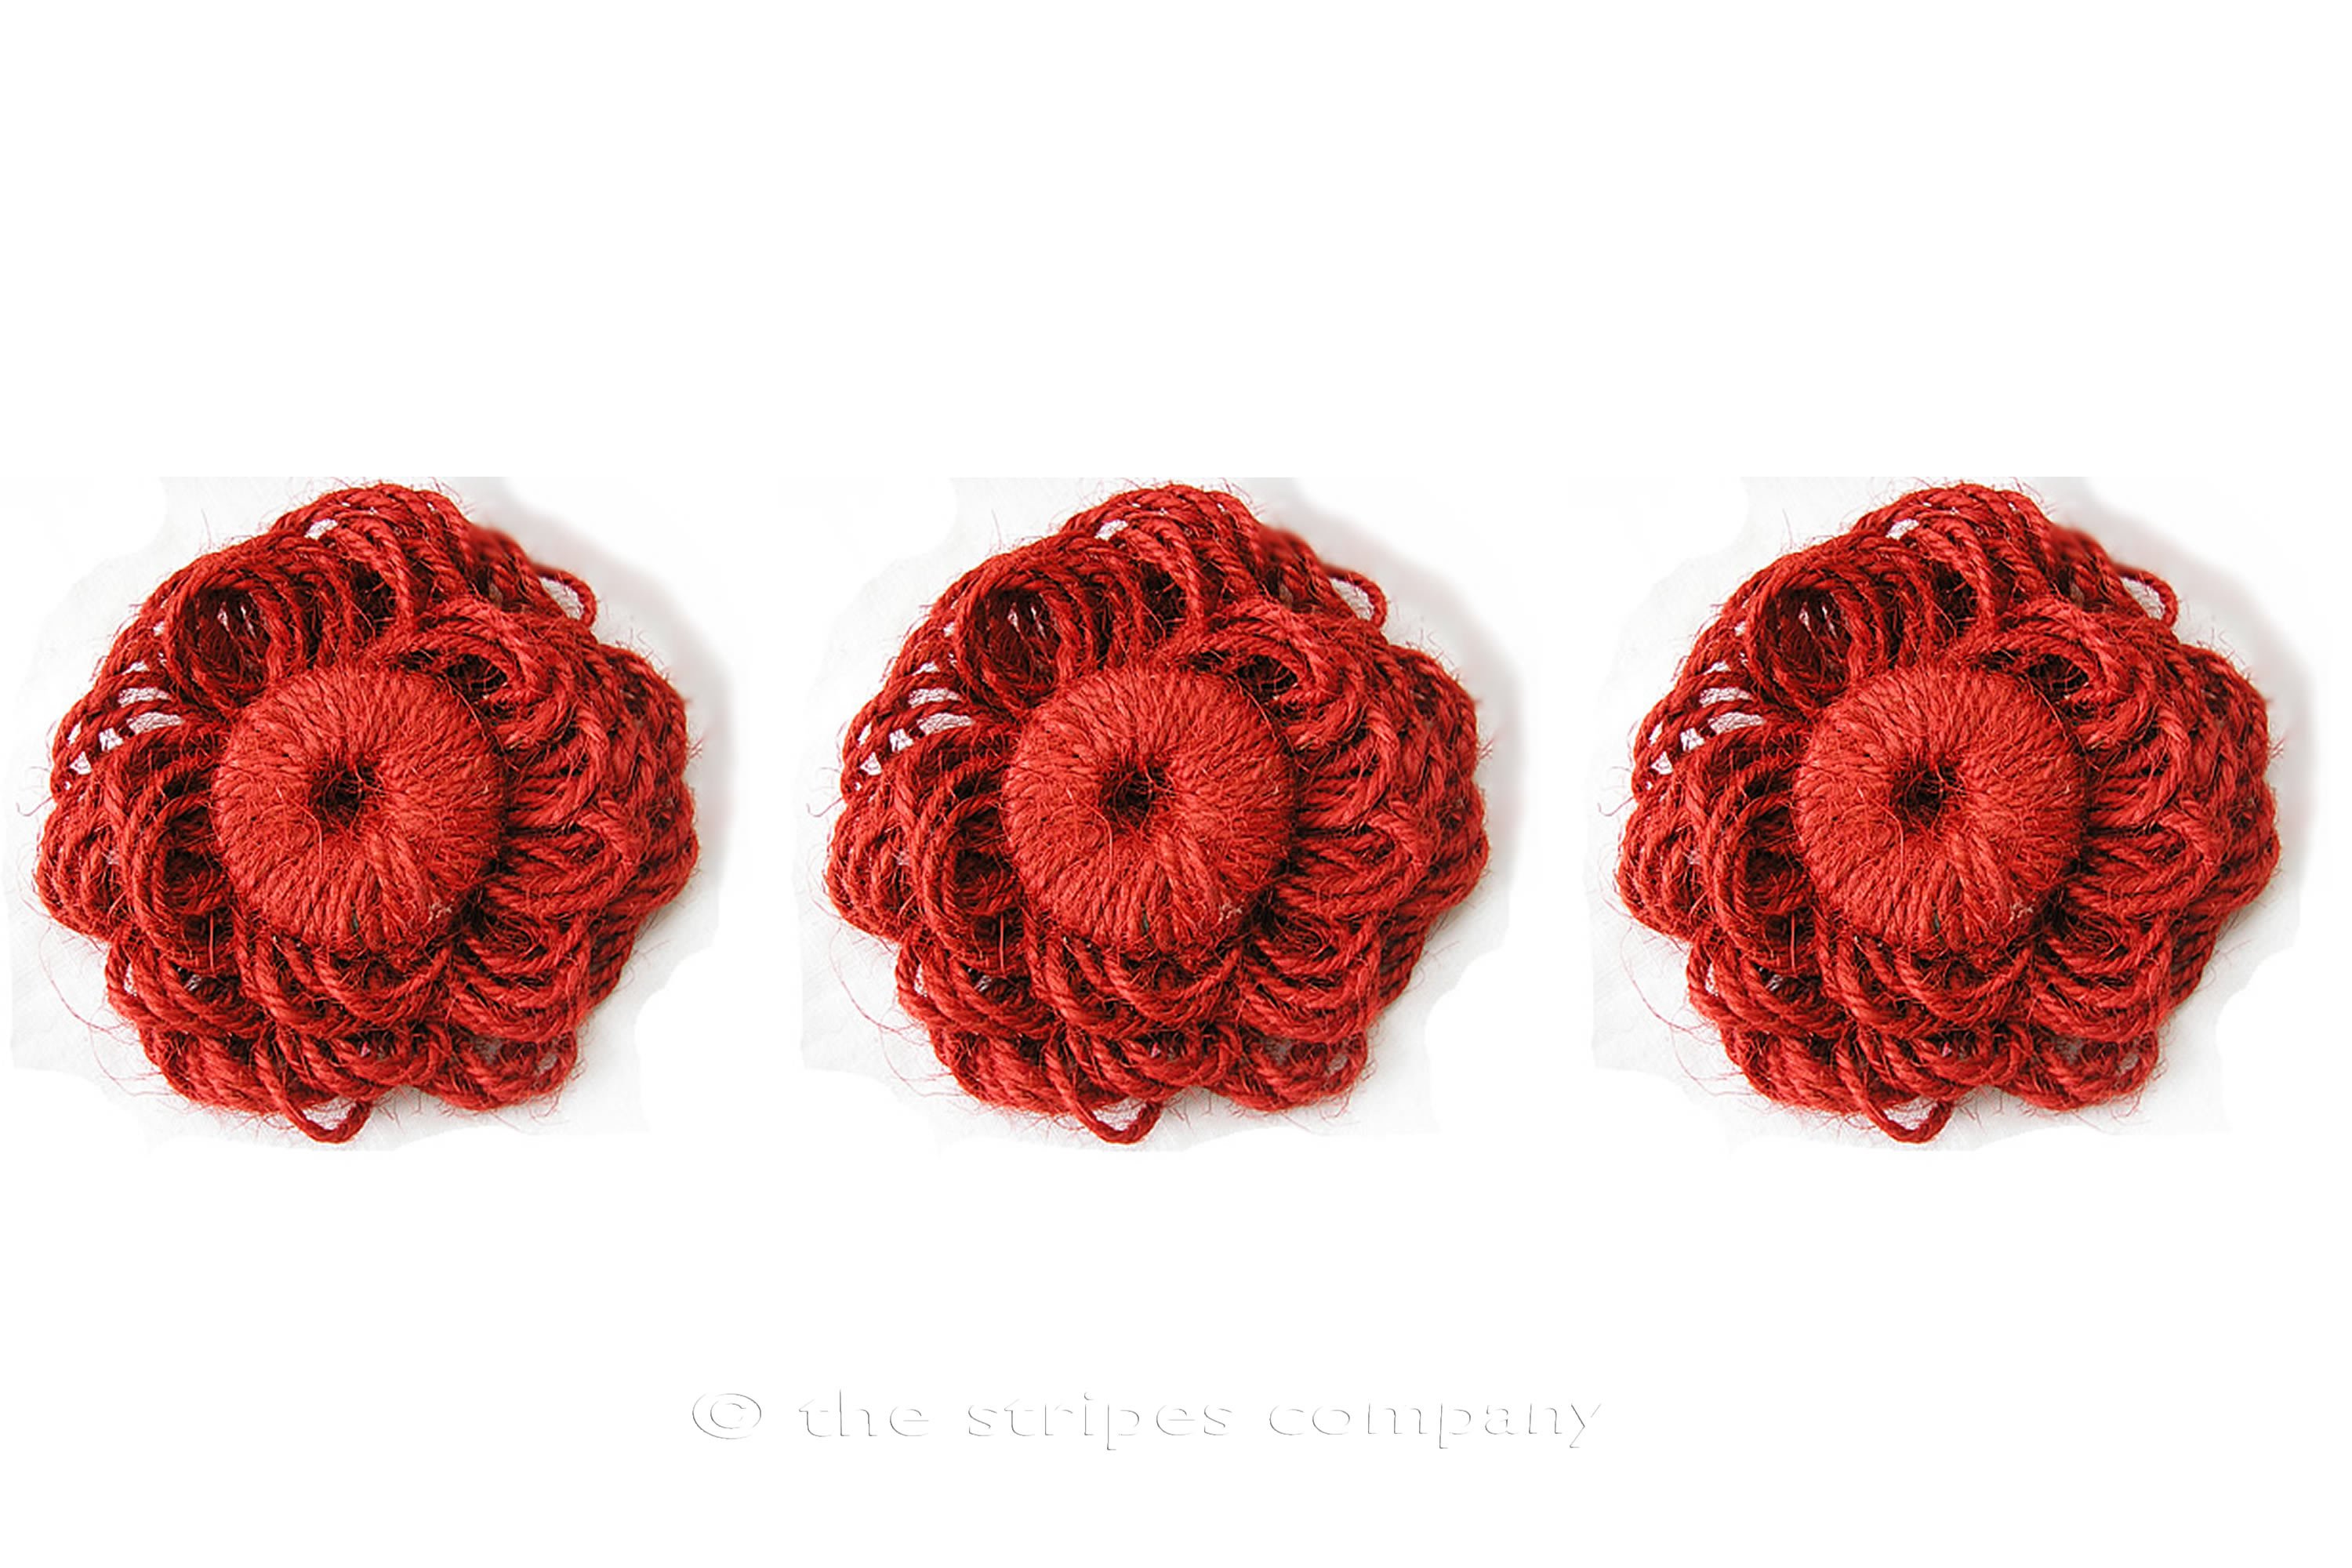 Red Jute Flower Rosettes - Fabric Flowers - Fabric Rosettes Red